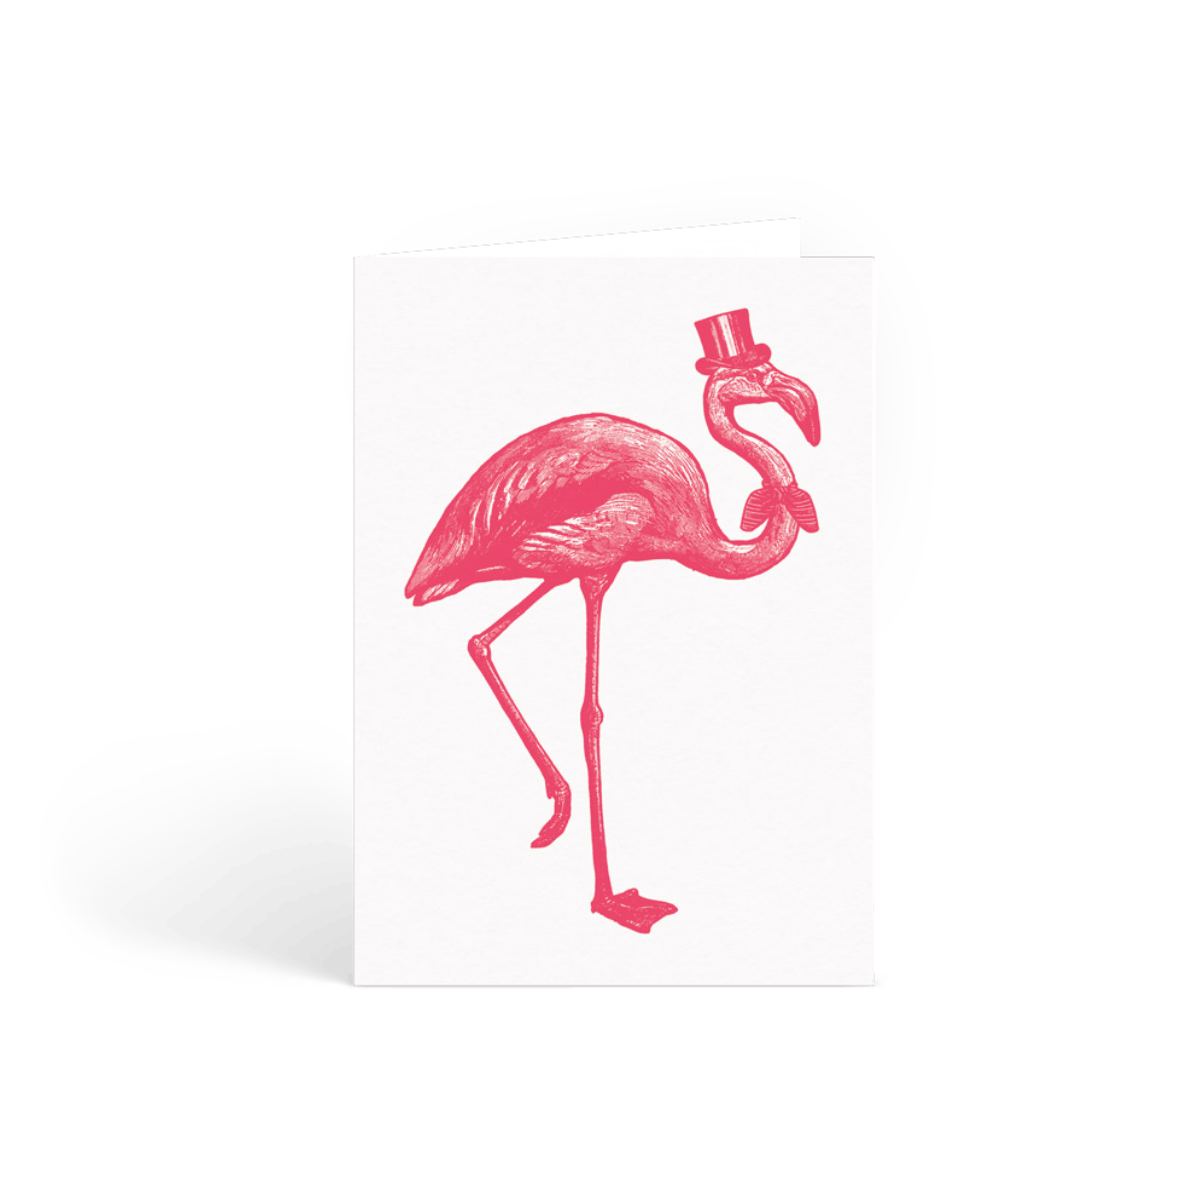 Https%3a%2f%2fwww.papier.com%2fproduct image%2f12959%2f2%2fsophisticated flamingo 3268 front 1477920848.png?ixlib=rb 1.1